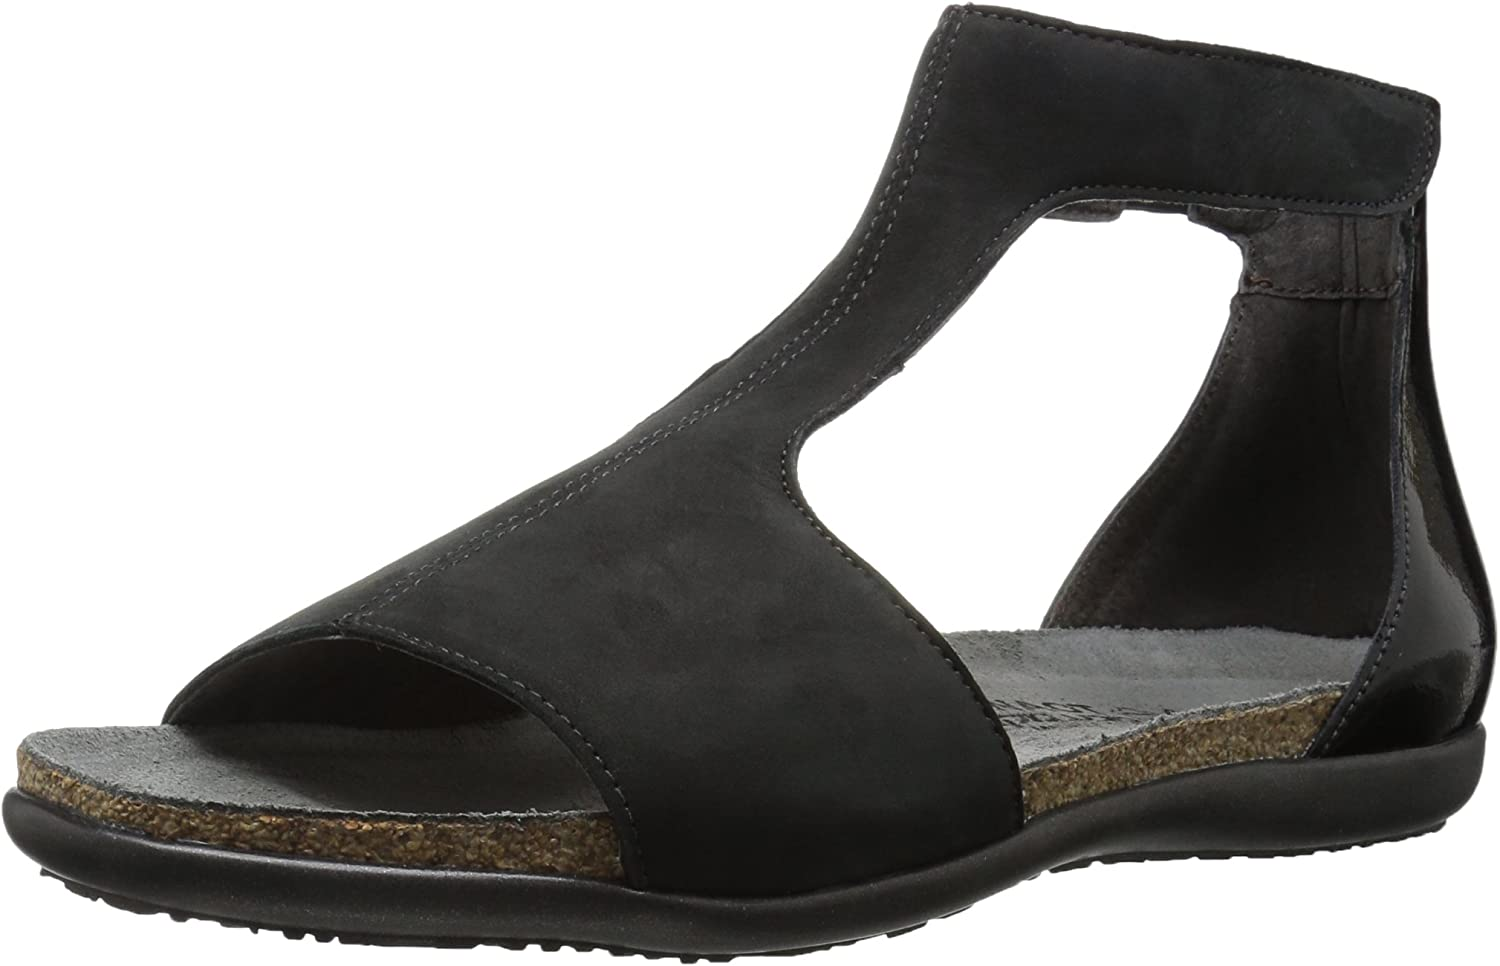 Naot Nala, Velvet Nubuck Black Luster Leather, 35 (US Women's 4) M